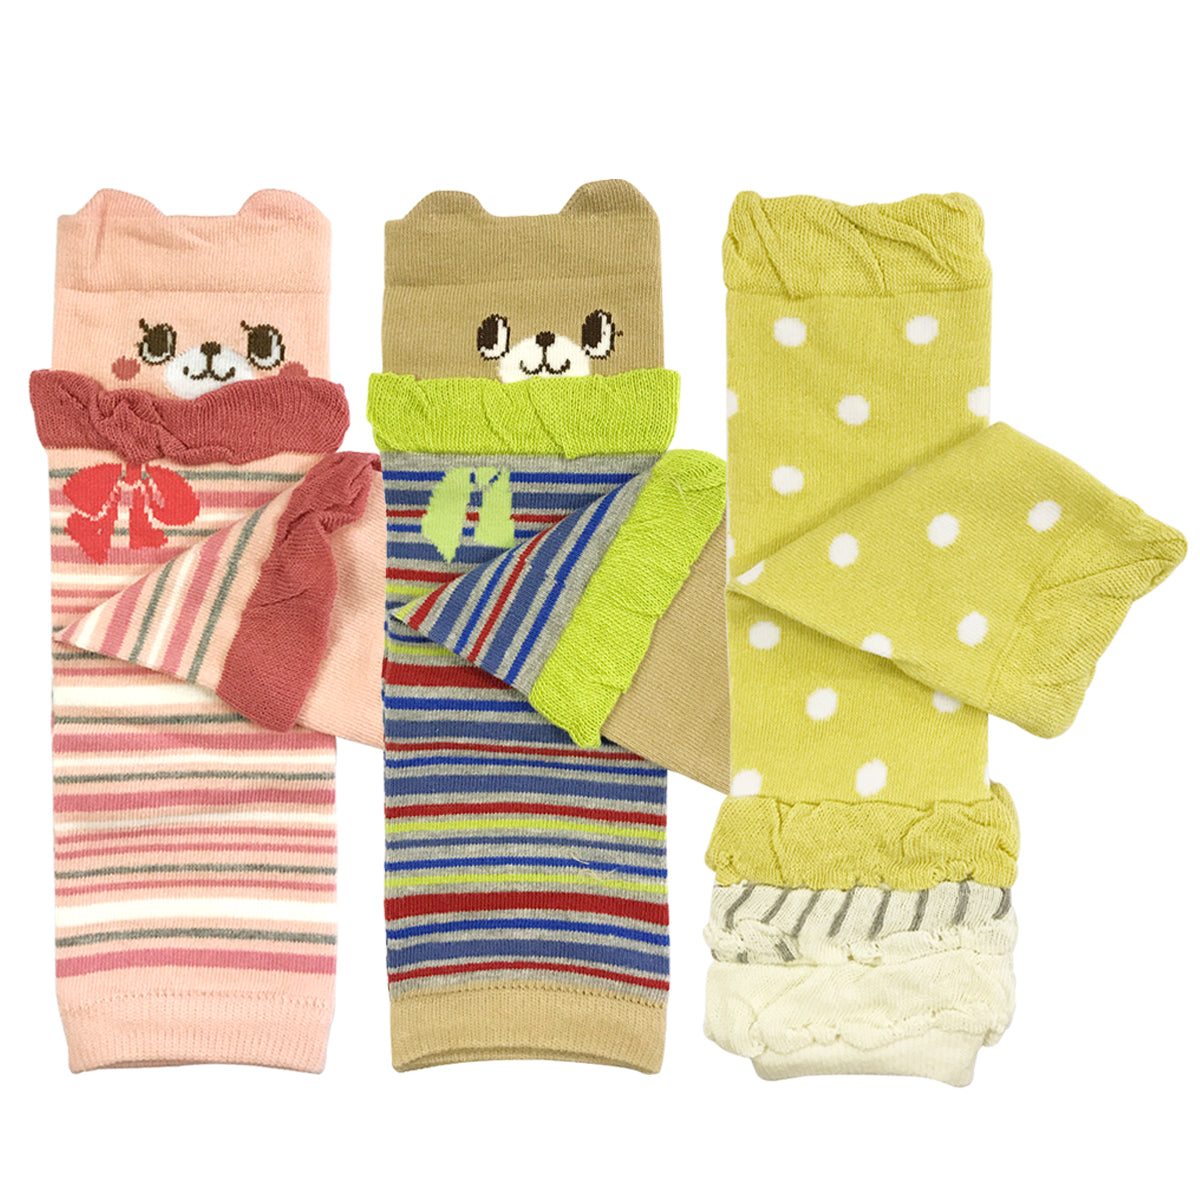 Wrapables Colorful Baby Leg Warmers Set of 3